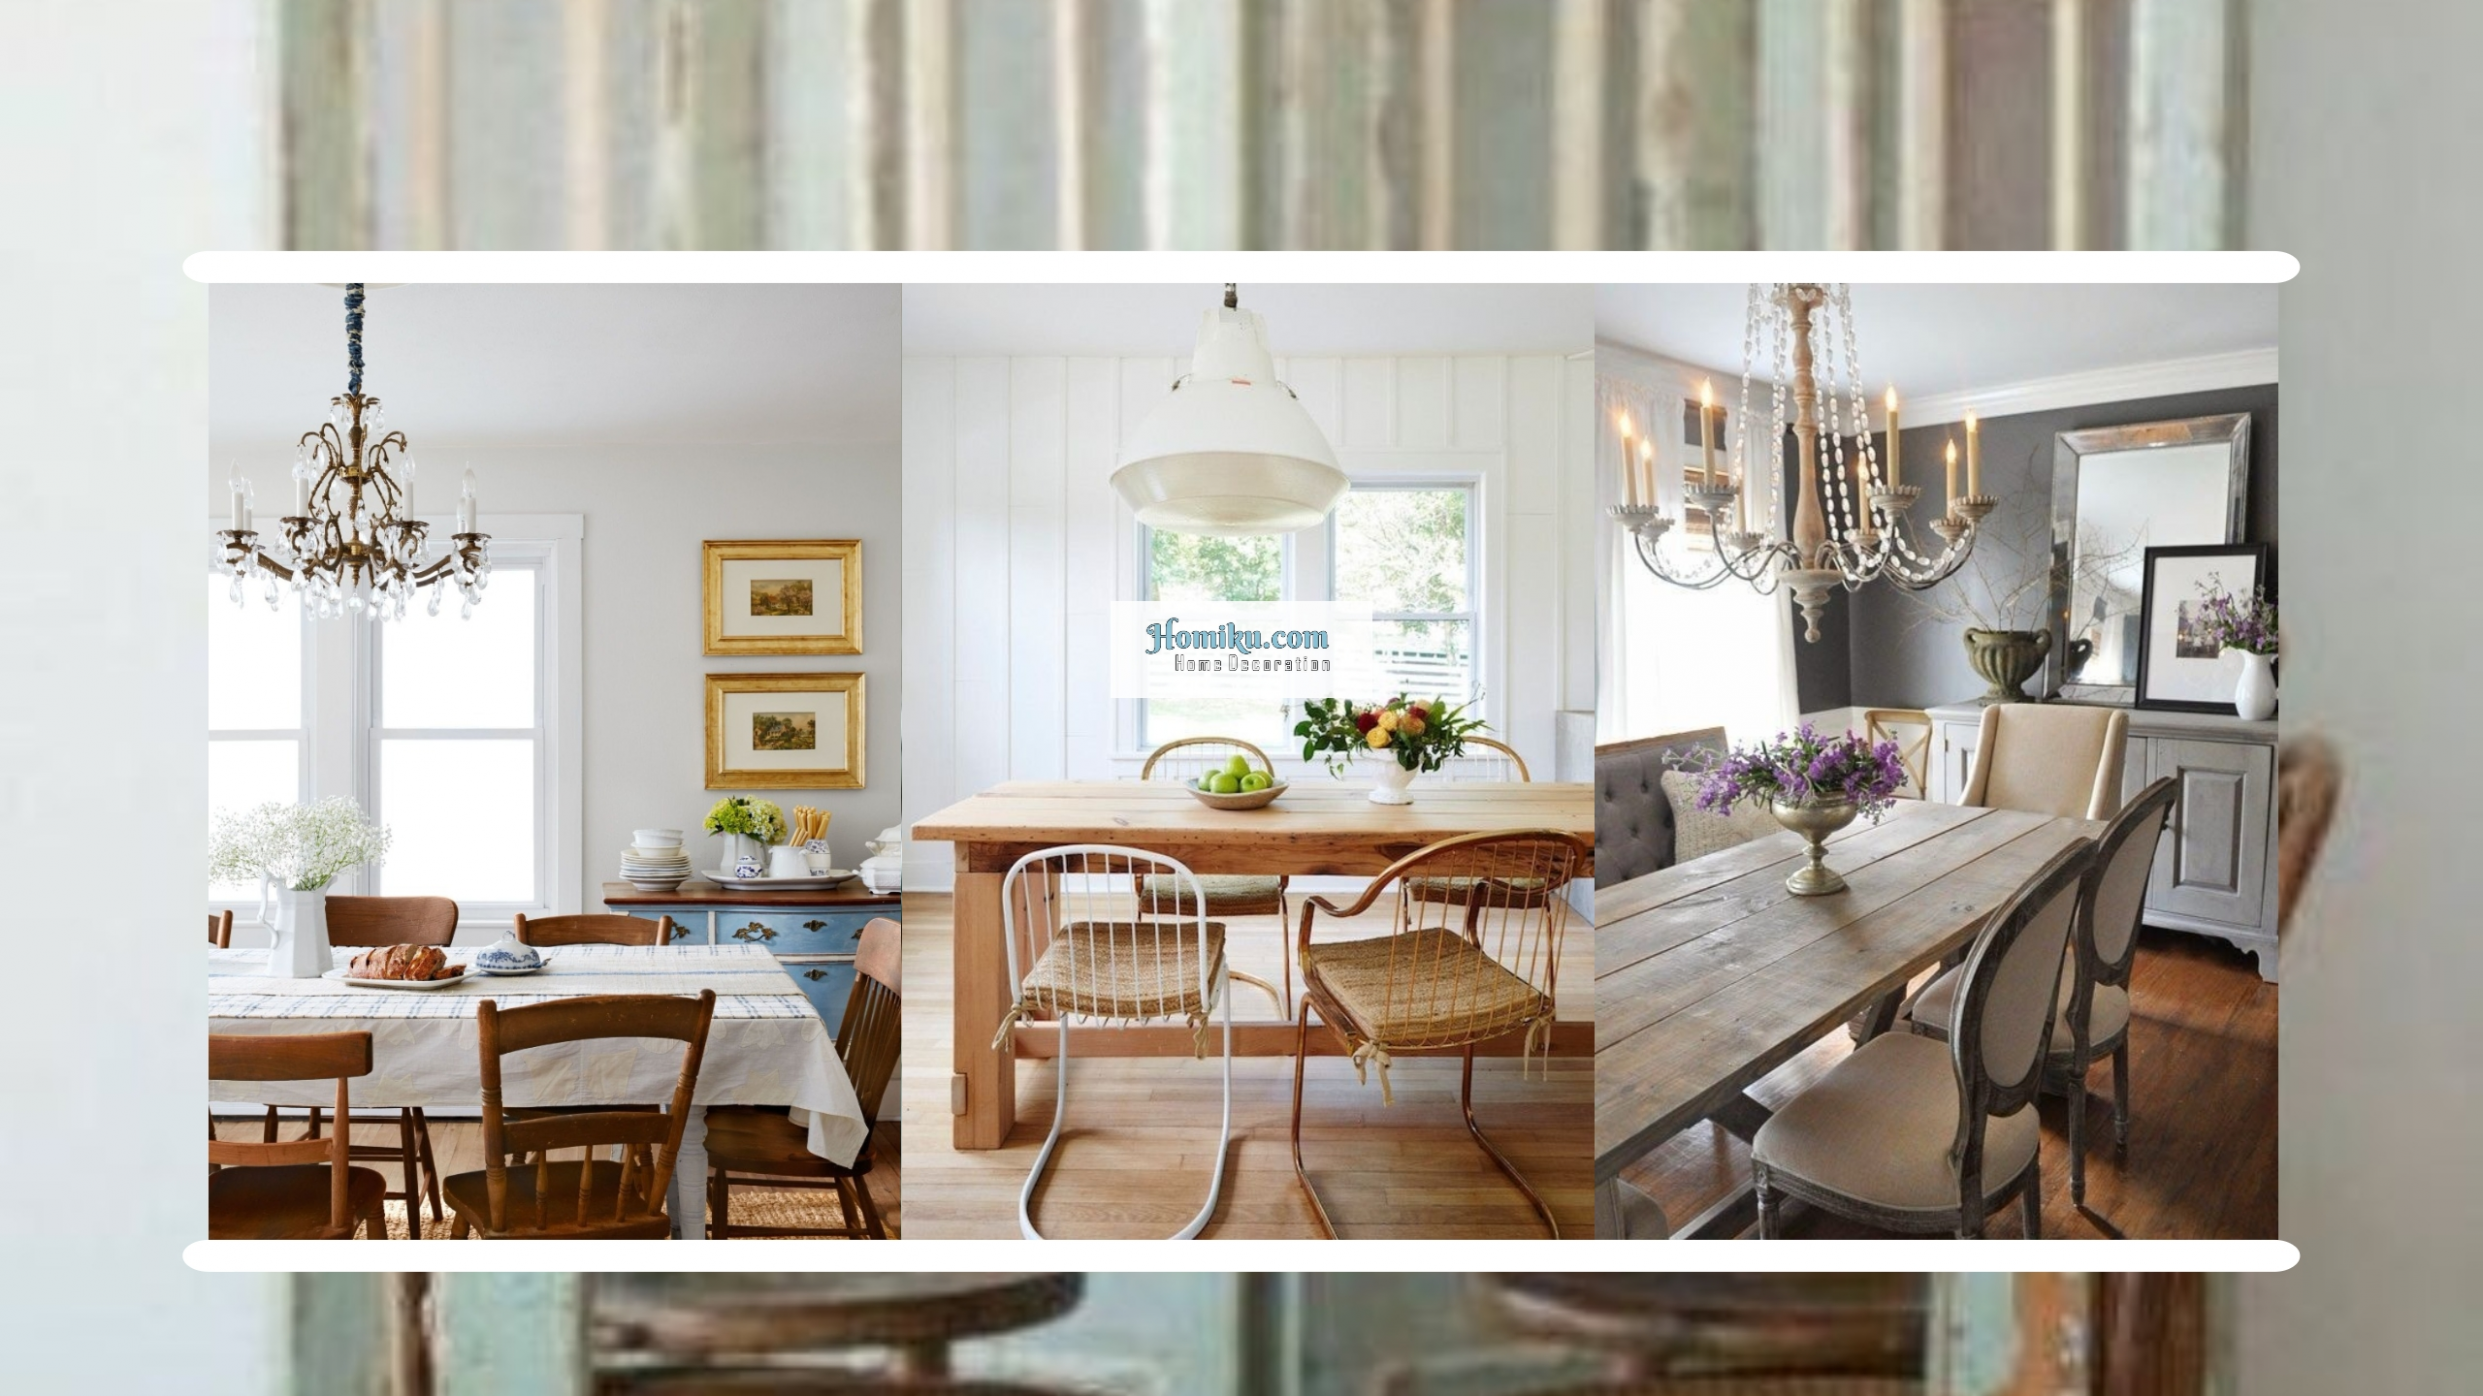 12 Rustic Glam Dining Room Makeover Ideas - Homiku